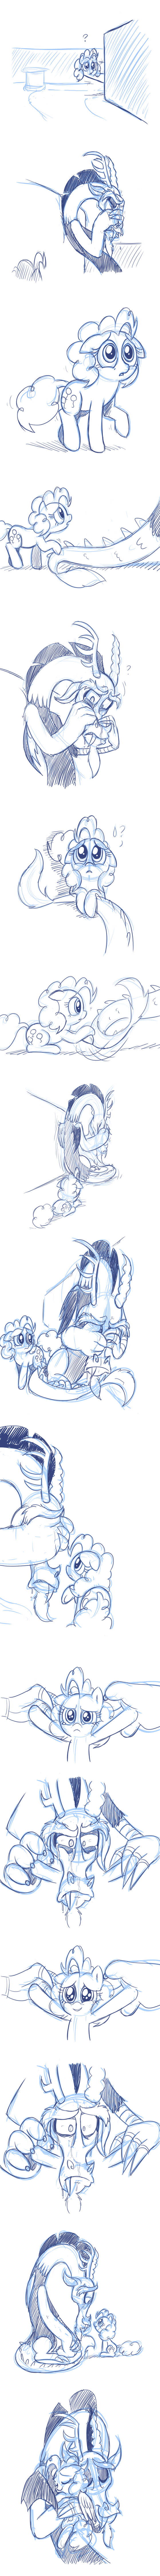 Cheering up Discord by Mickeymonster